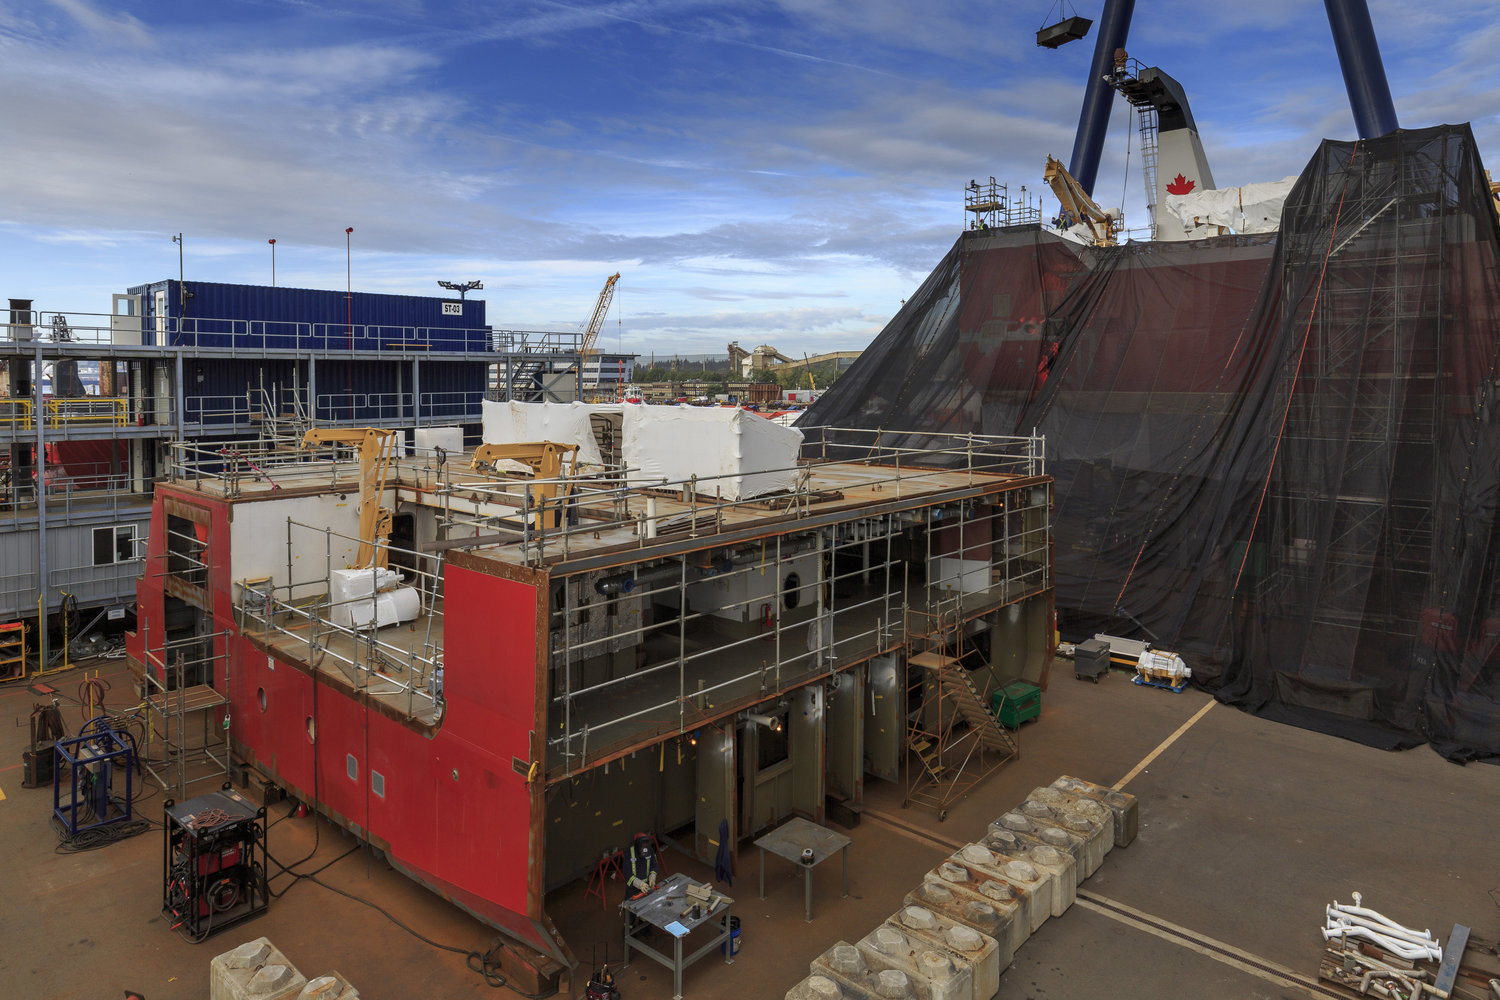 New Vessels For Rcn Ccg Seaspan Shipyards Is Making Waves In The Canadian Shipbuilding Industry Espritdecorps